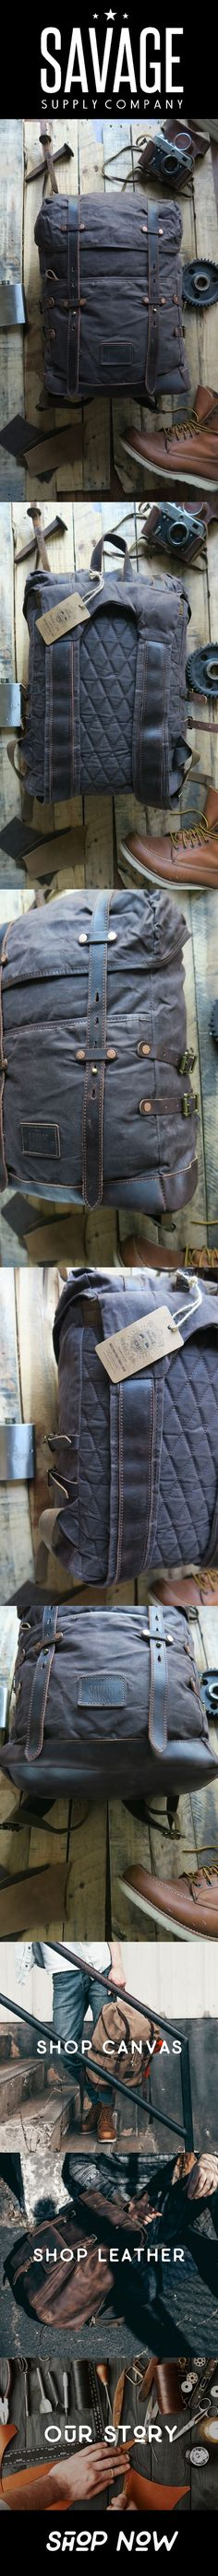 bc6060e0b2d Waxed canvas adventure hiking camping backpack by Savage Supply Co.  Adventure Gear